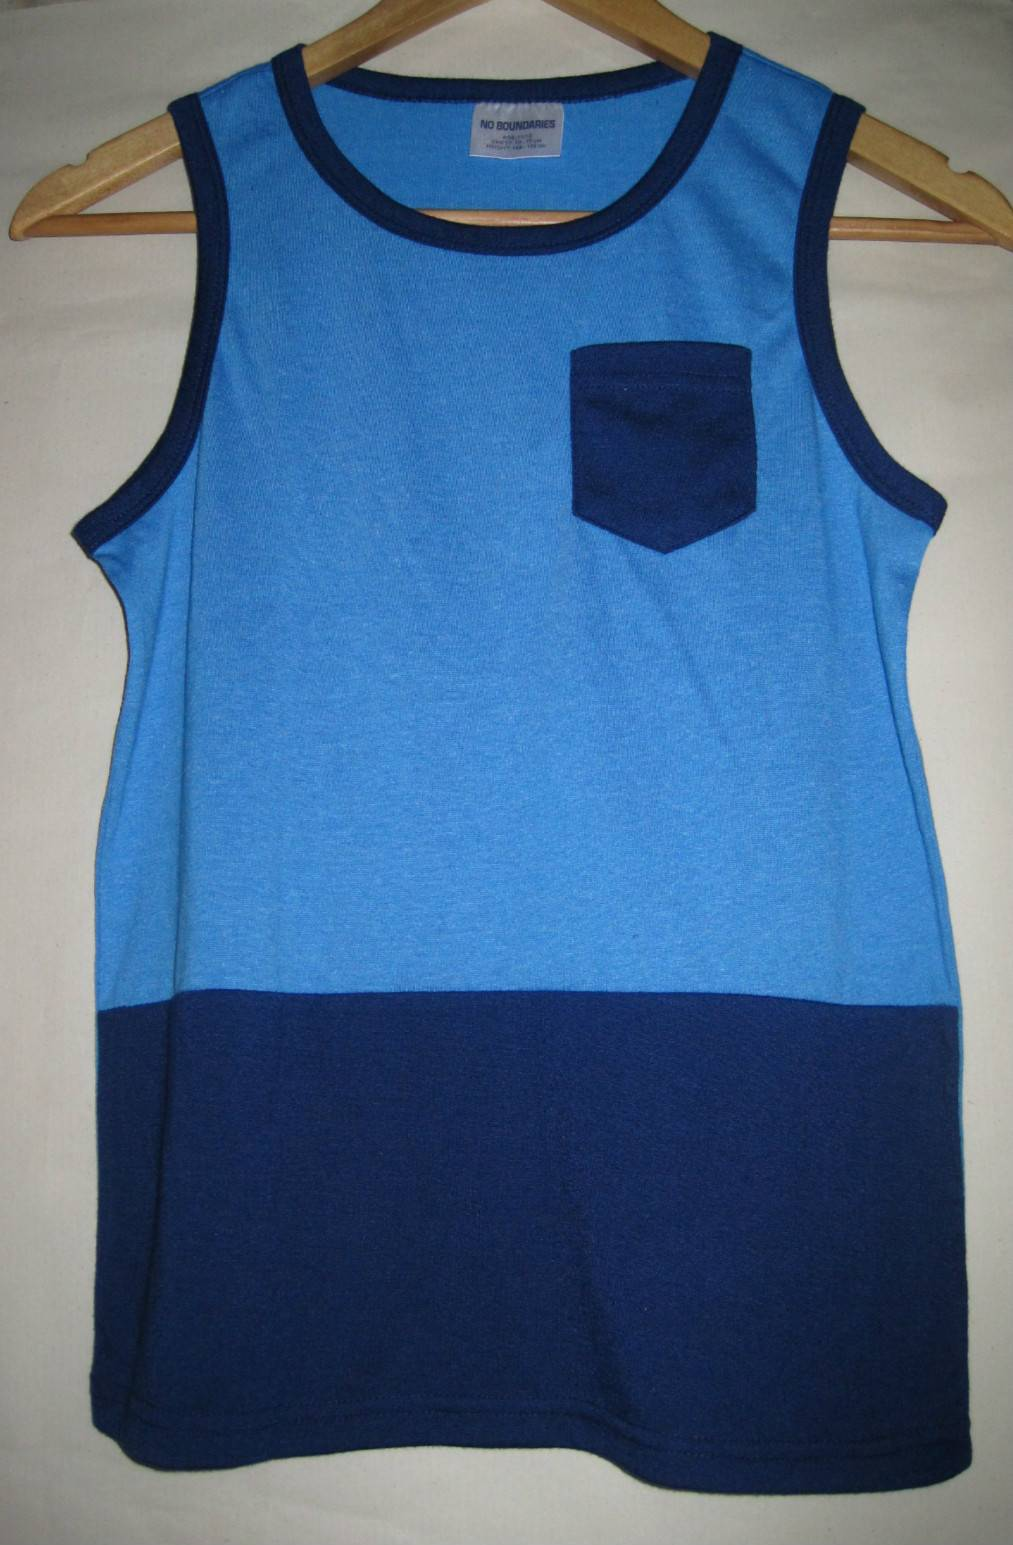 Children's tank top with pocket and combination